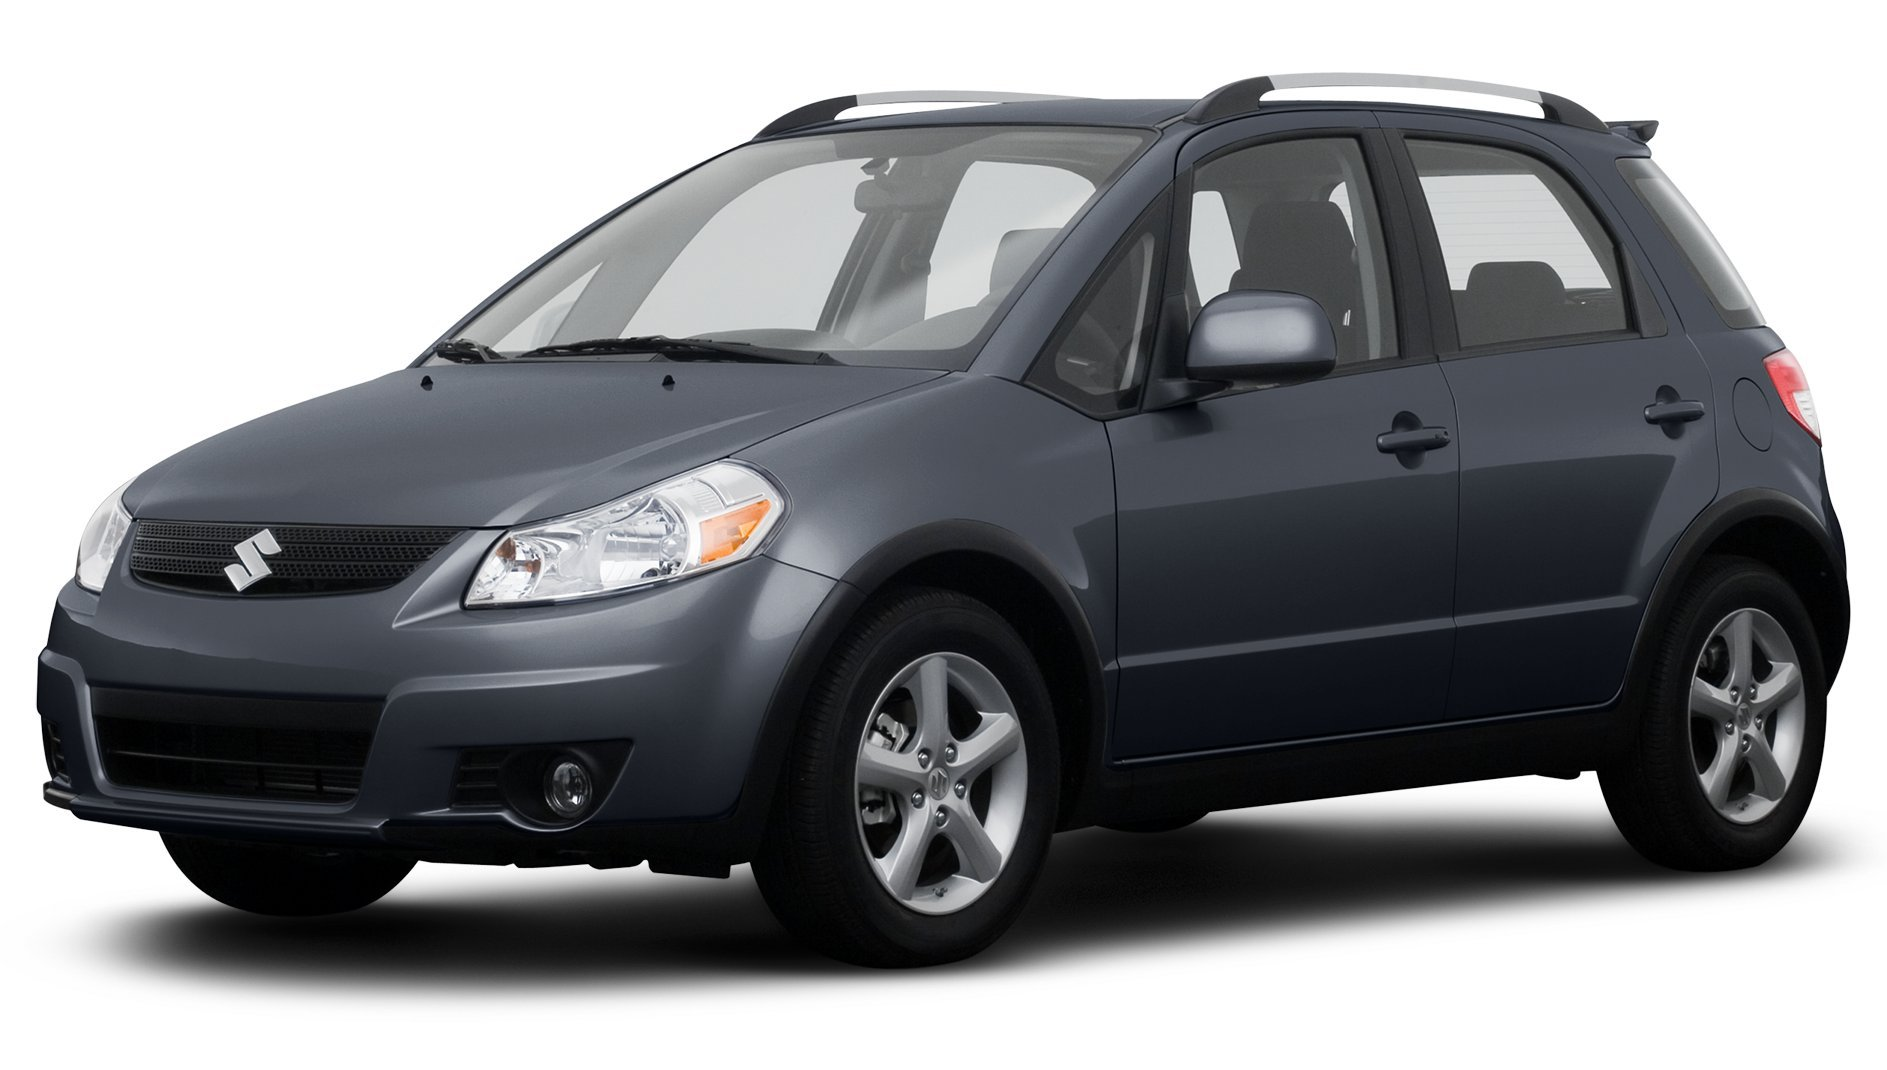 Amazon 2008 subaru outback reviews images and specs vehicles 2008 subaru outback 4 door 4 cylinder manual transmission 2008 suzuki sx4 touring package 2 5 door hatchback manual transmission vanachro Gallery